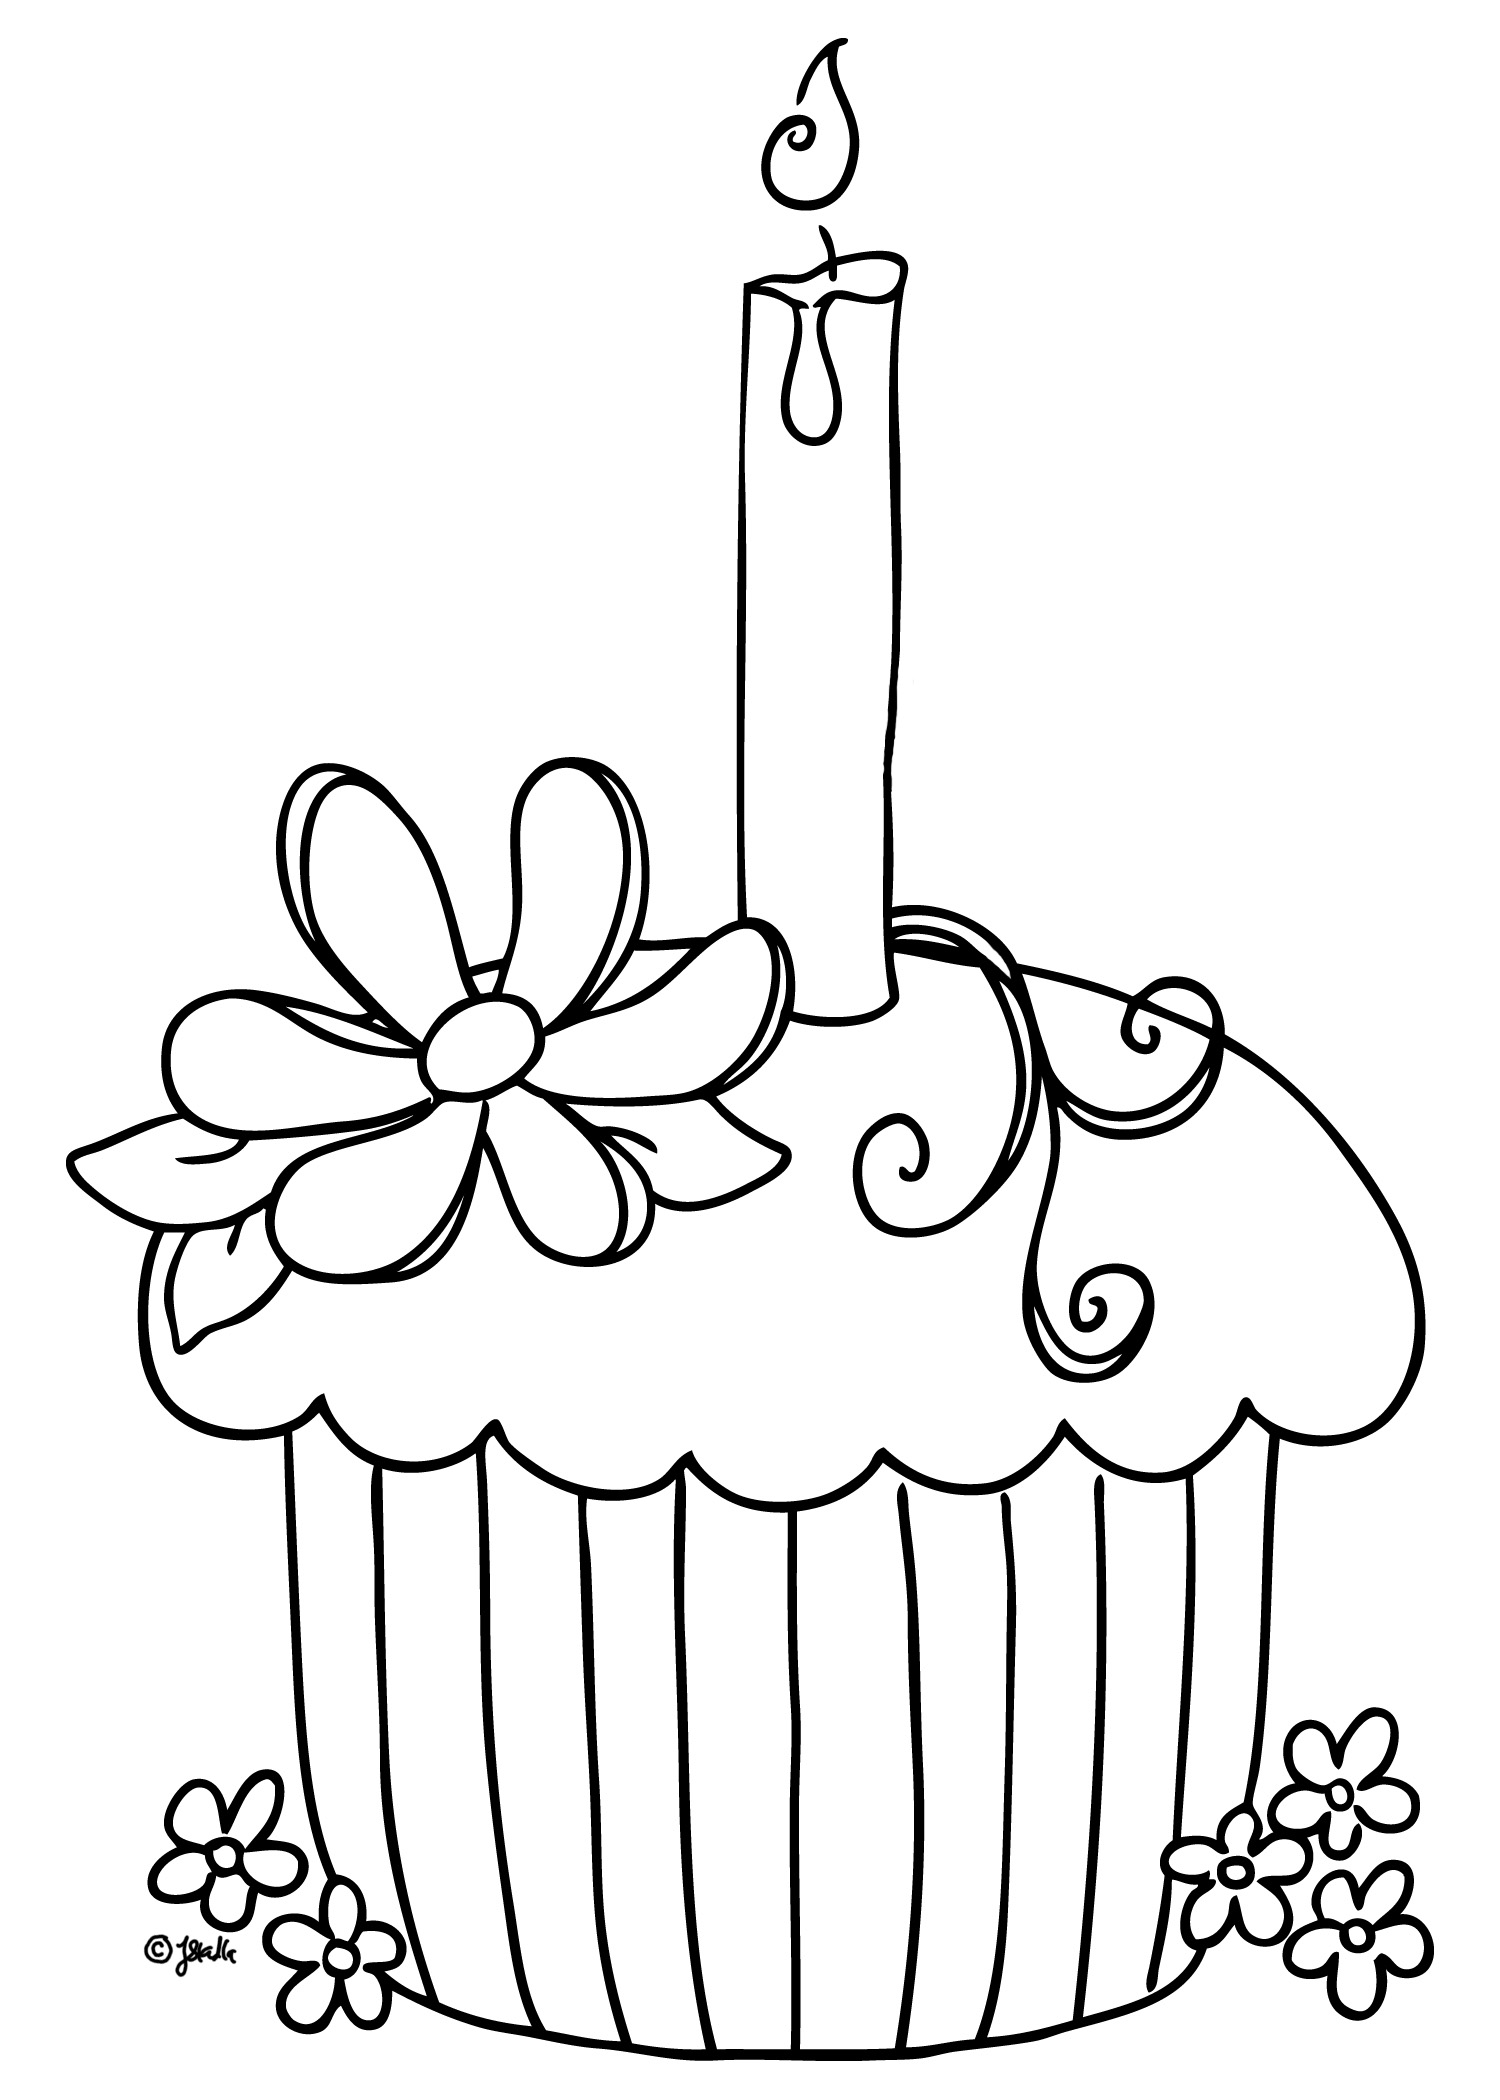 cupcake coloring pages to print - Cupcake Coloring Pages